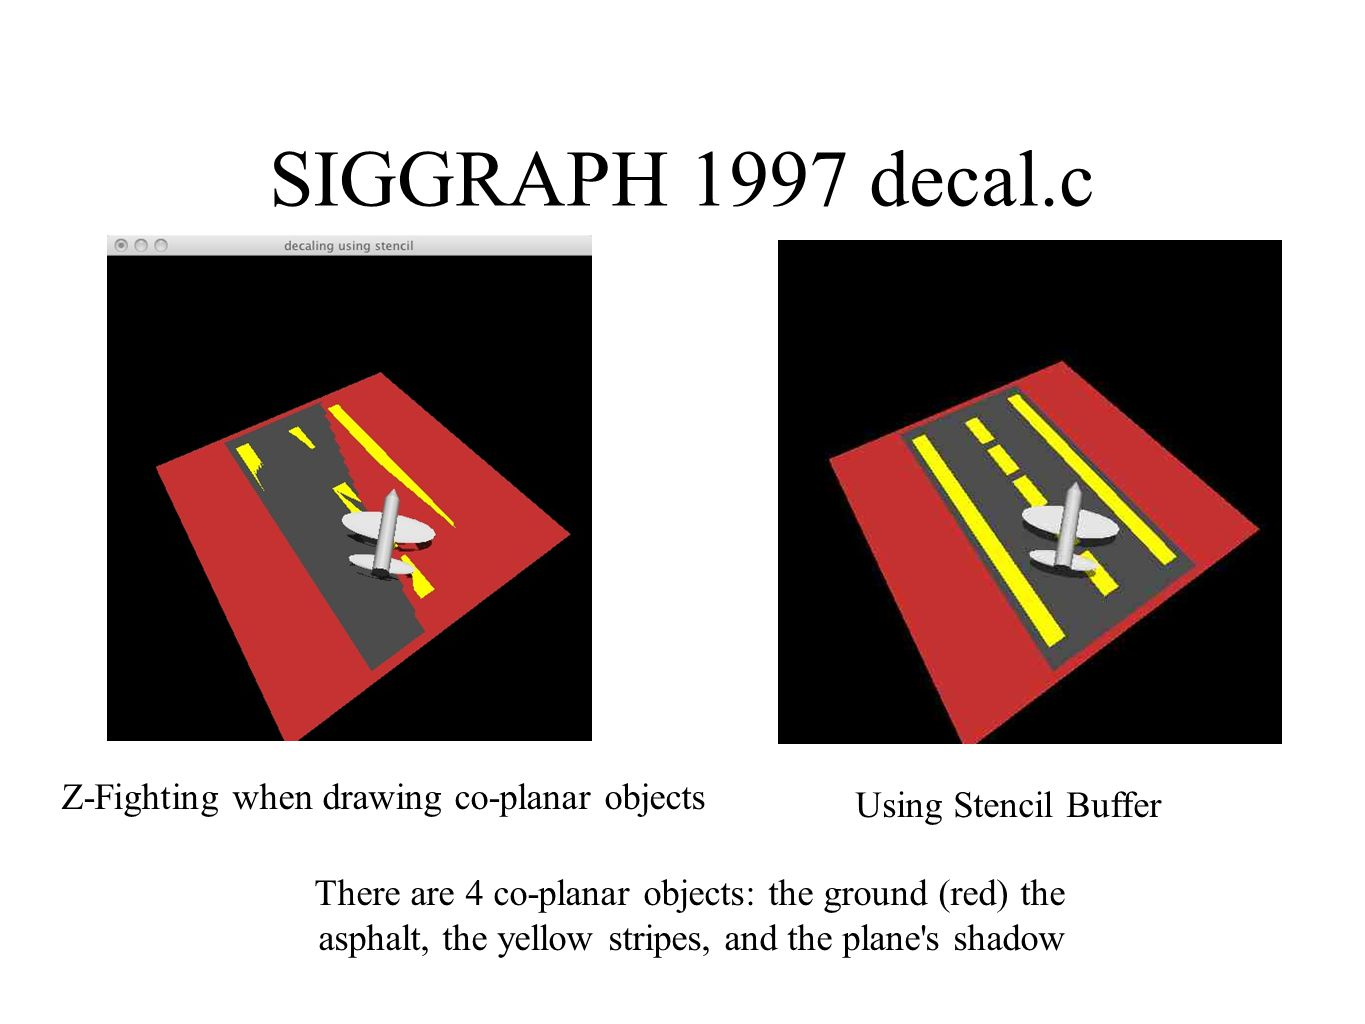 SIGGRAPH 1997 decal.c Z-Fighting when drawing co-planar objects